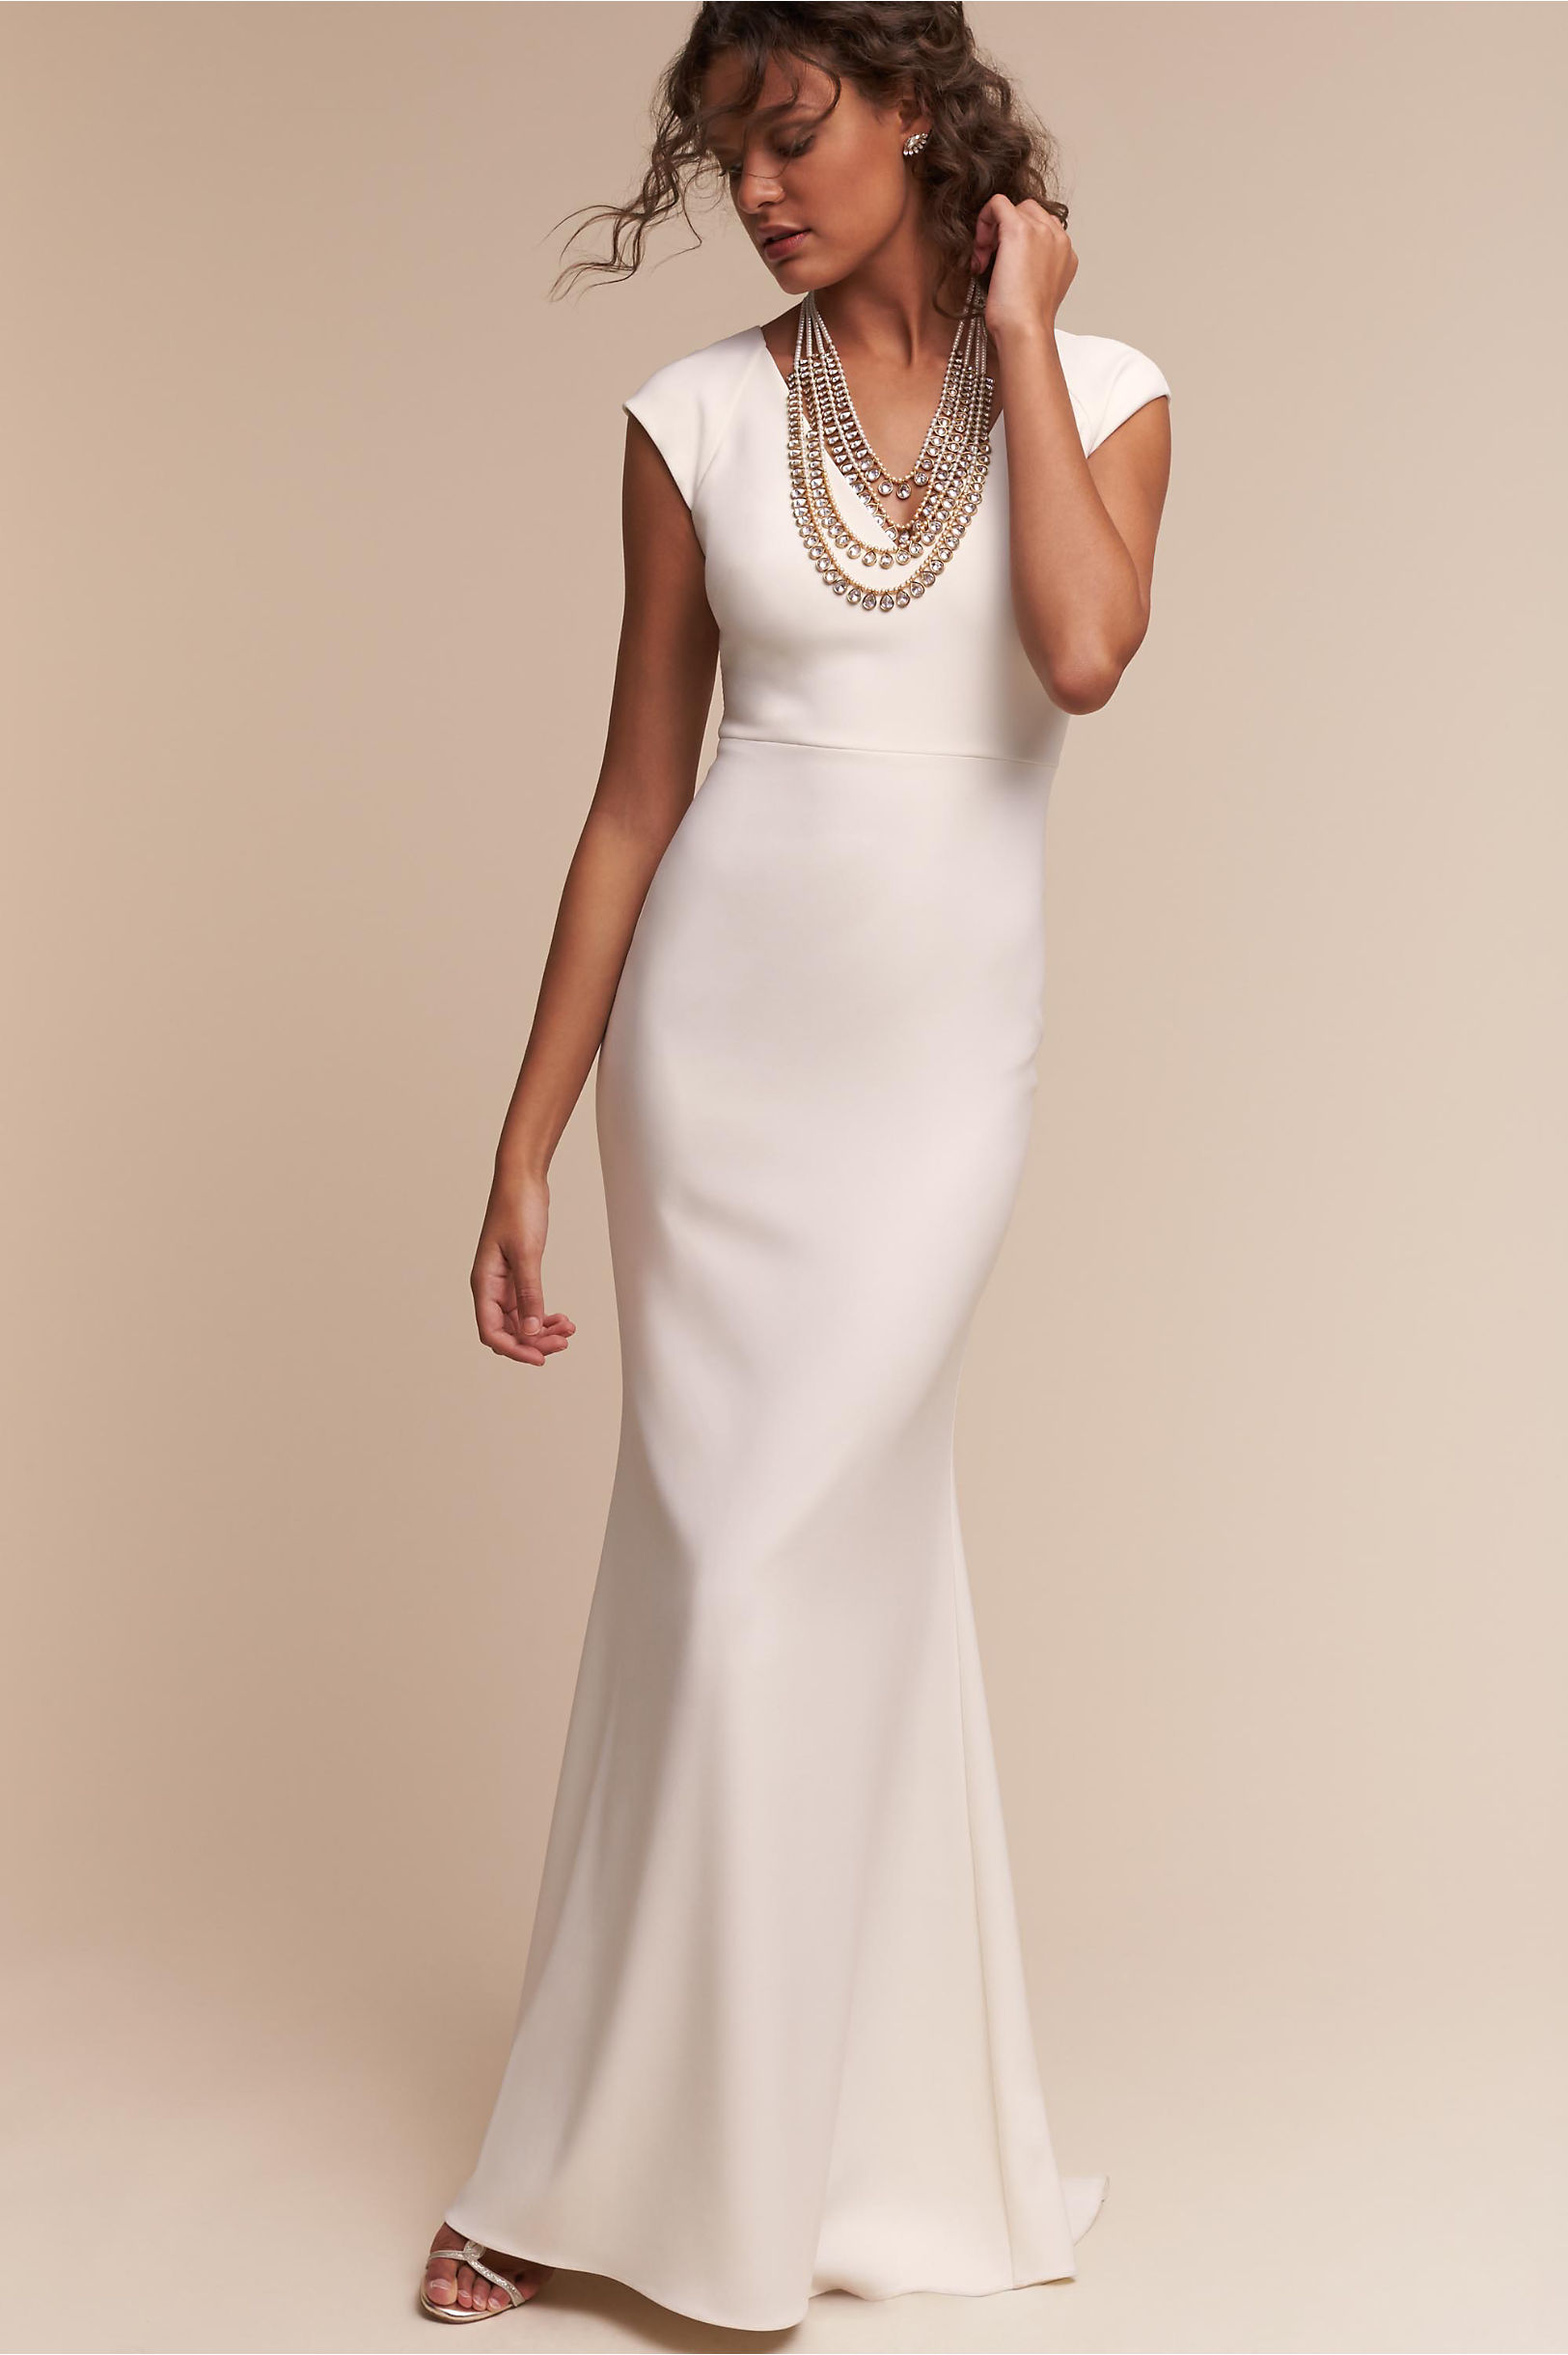 sheath-wedding-dress.jpg